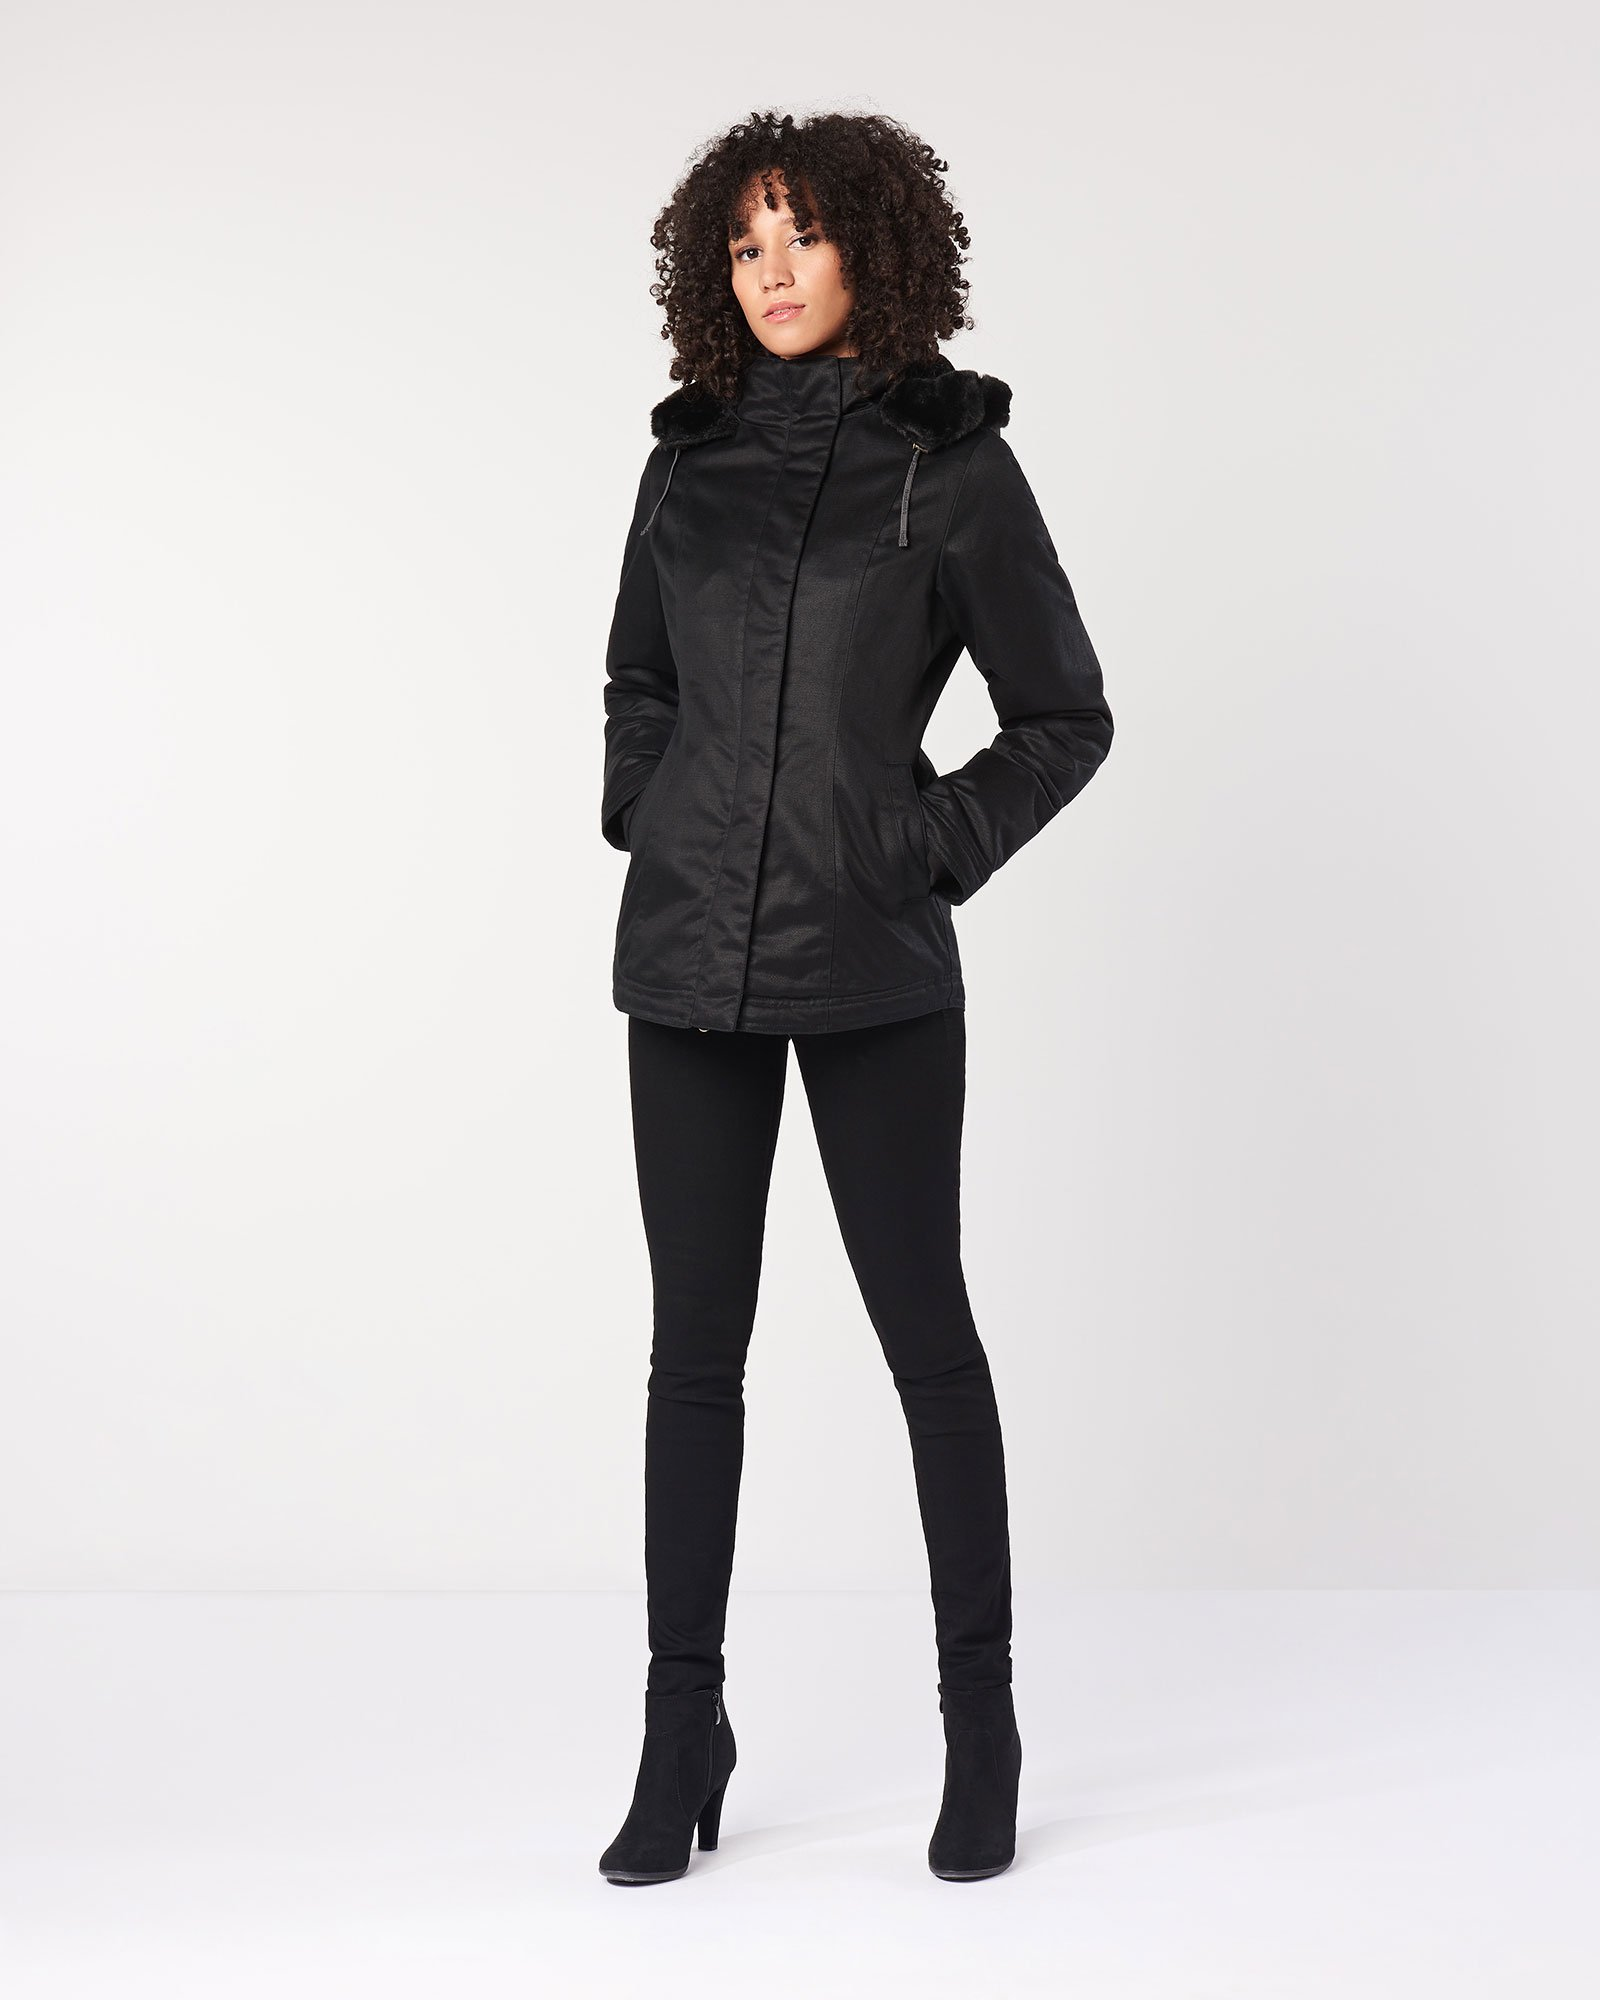 ed132a1af15f Ladies  Classic Hoodlamb in Nightwatch Black (FW18) by Hoodlamb ...